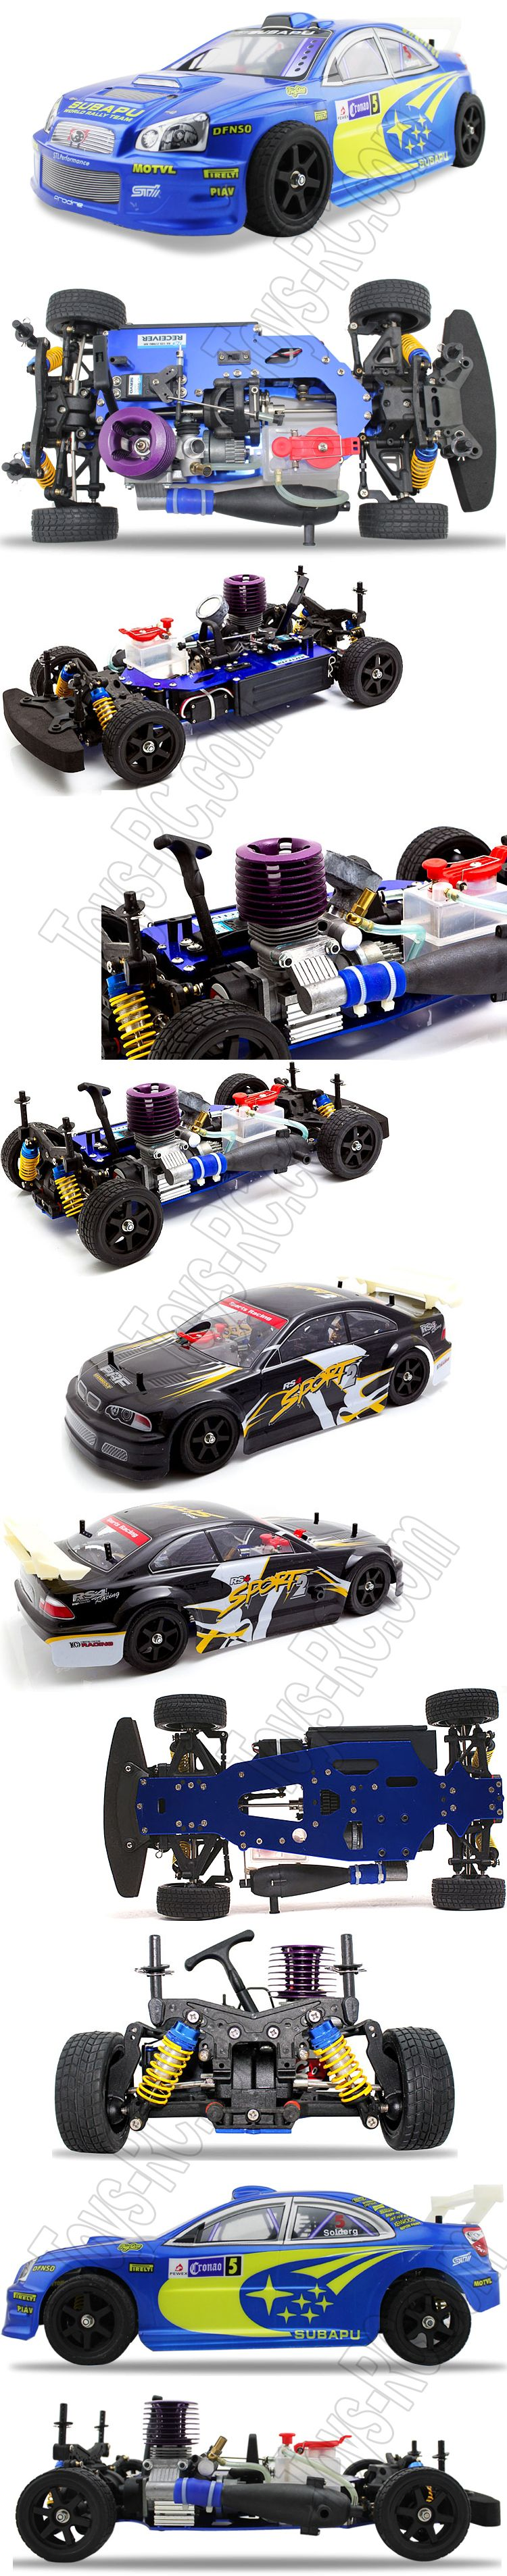 Gas Powered Rc Cars, Rc Cars, Rc